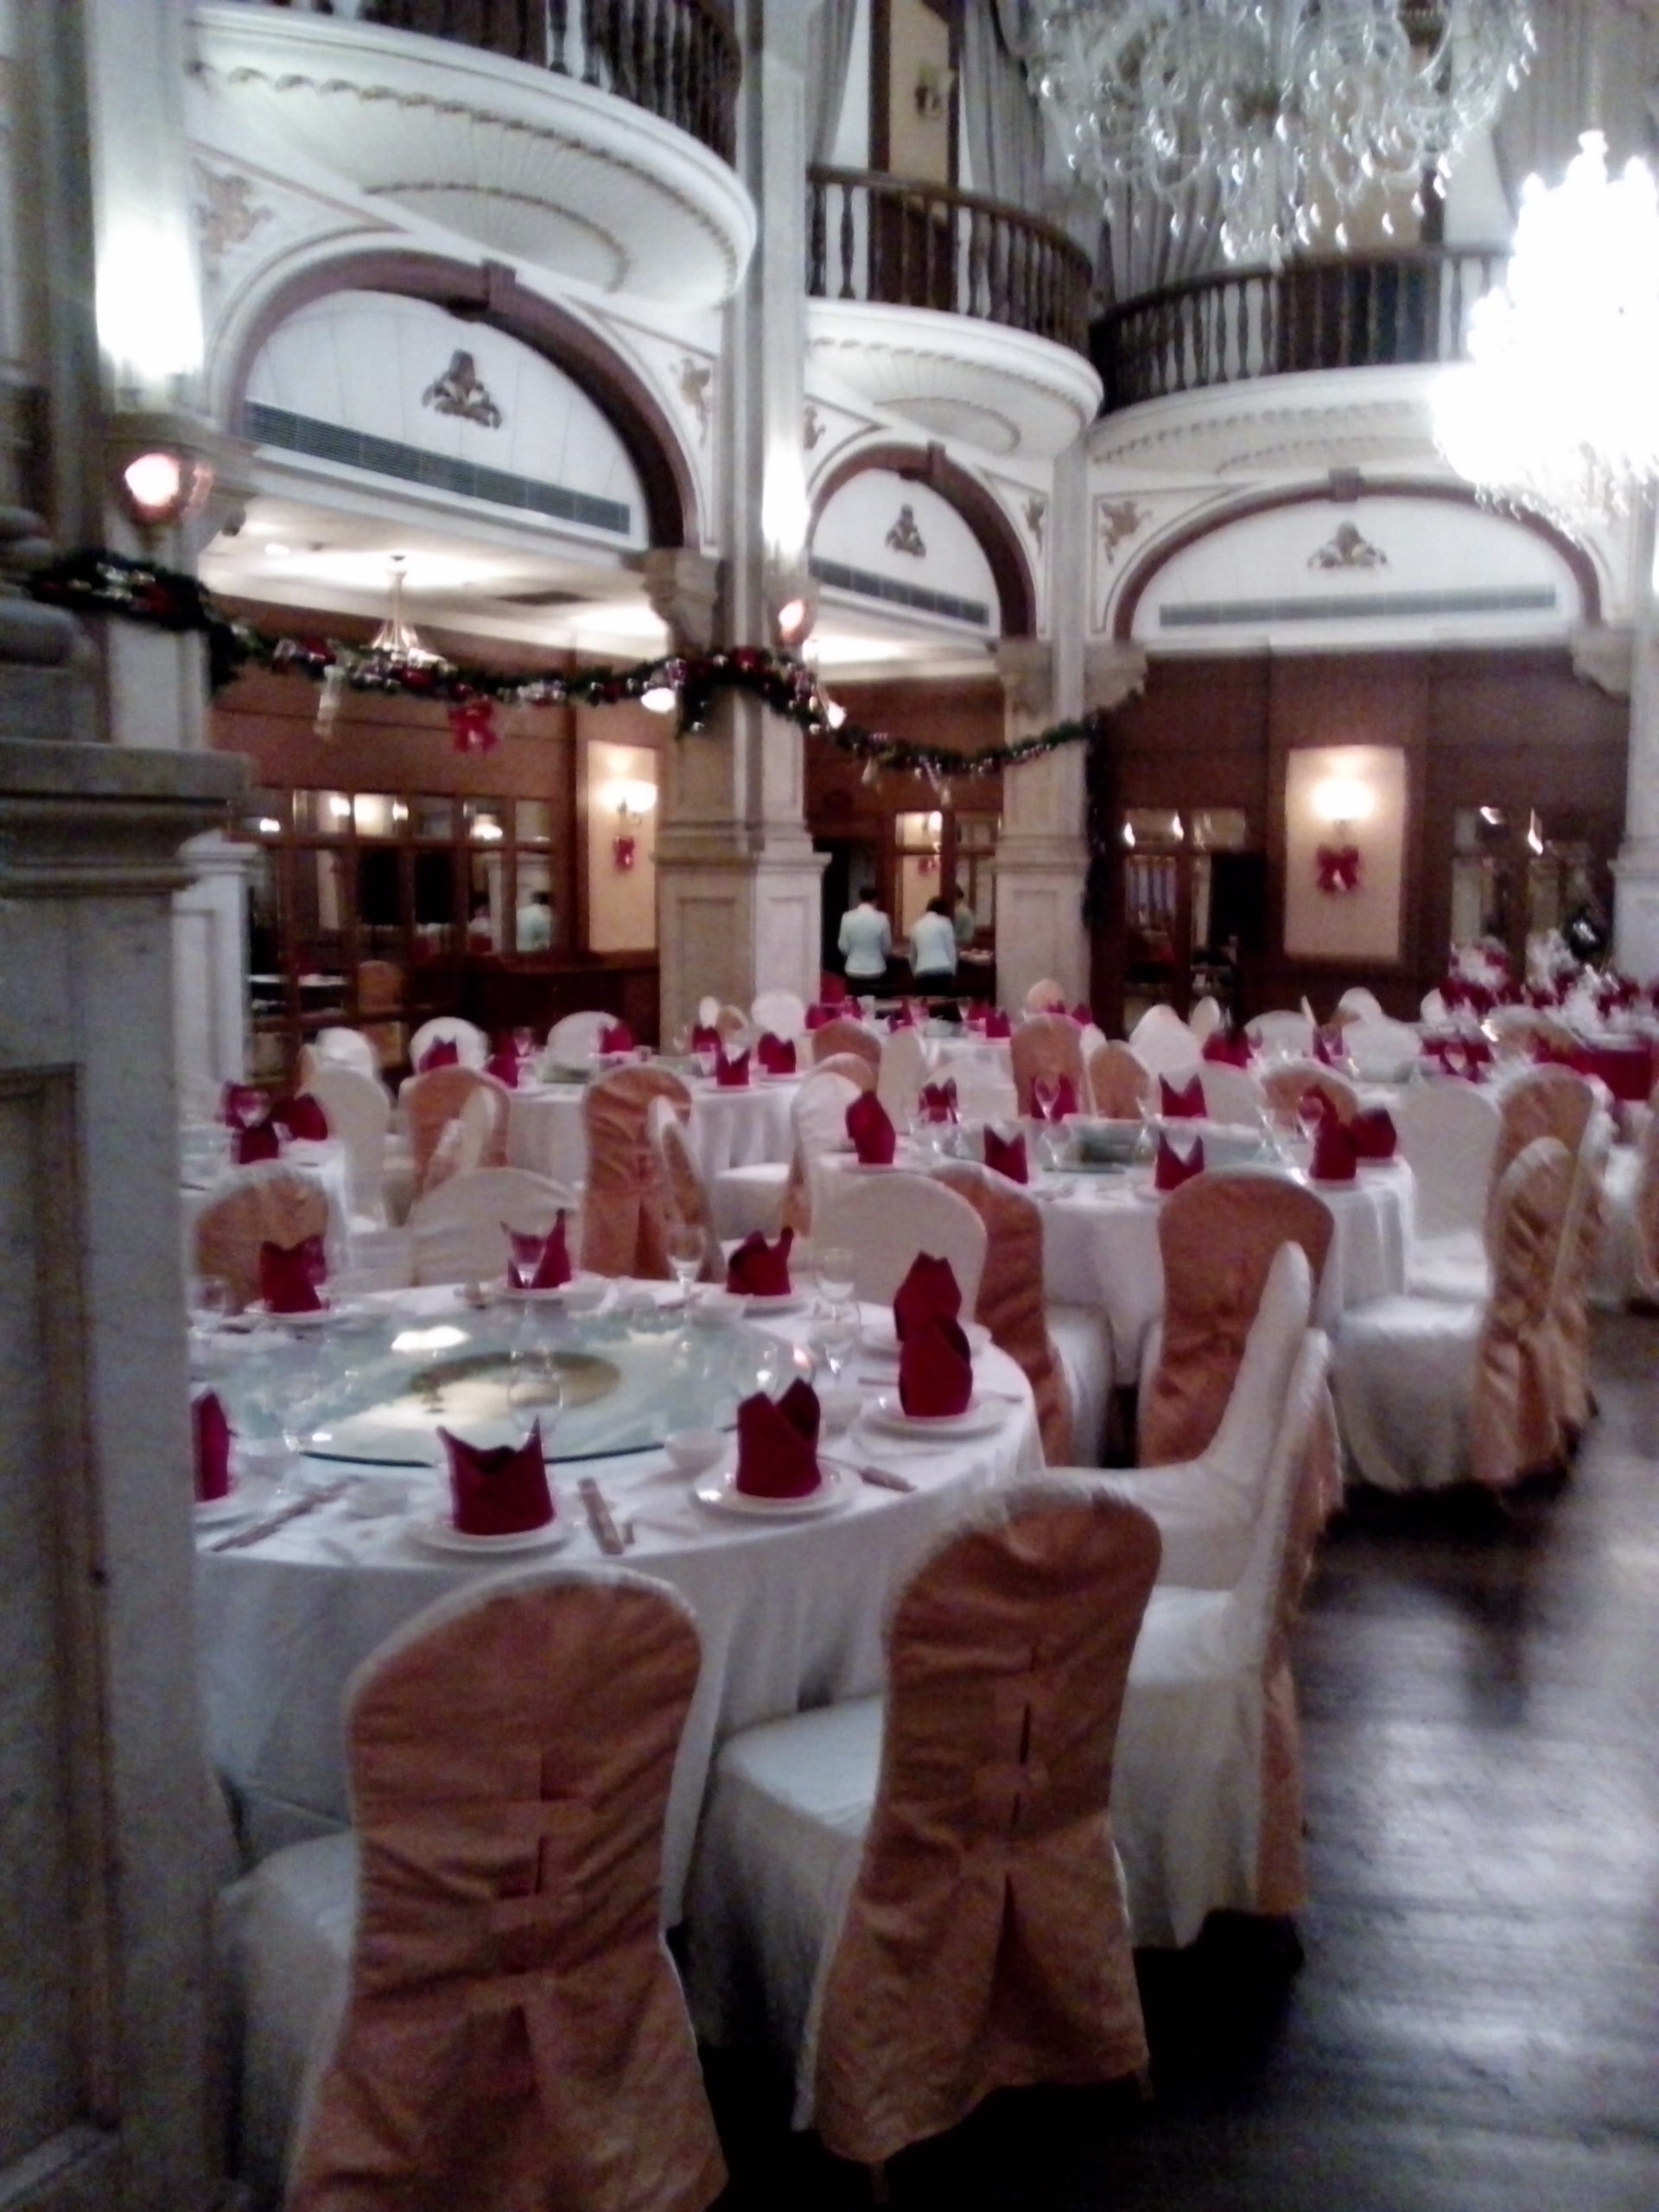 Astor House Hotel ballroom view